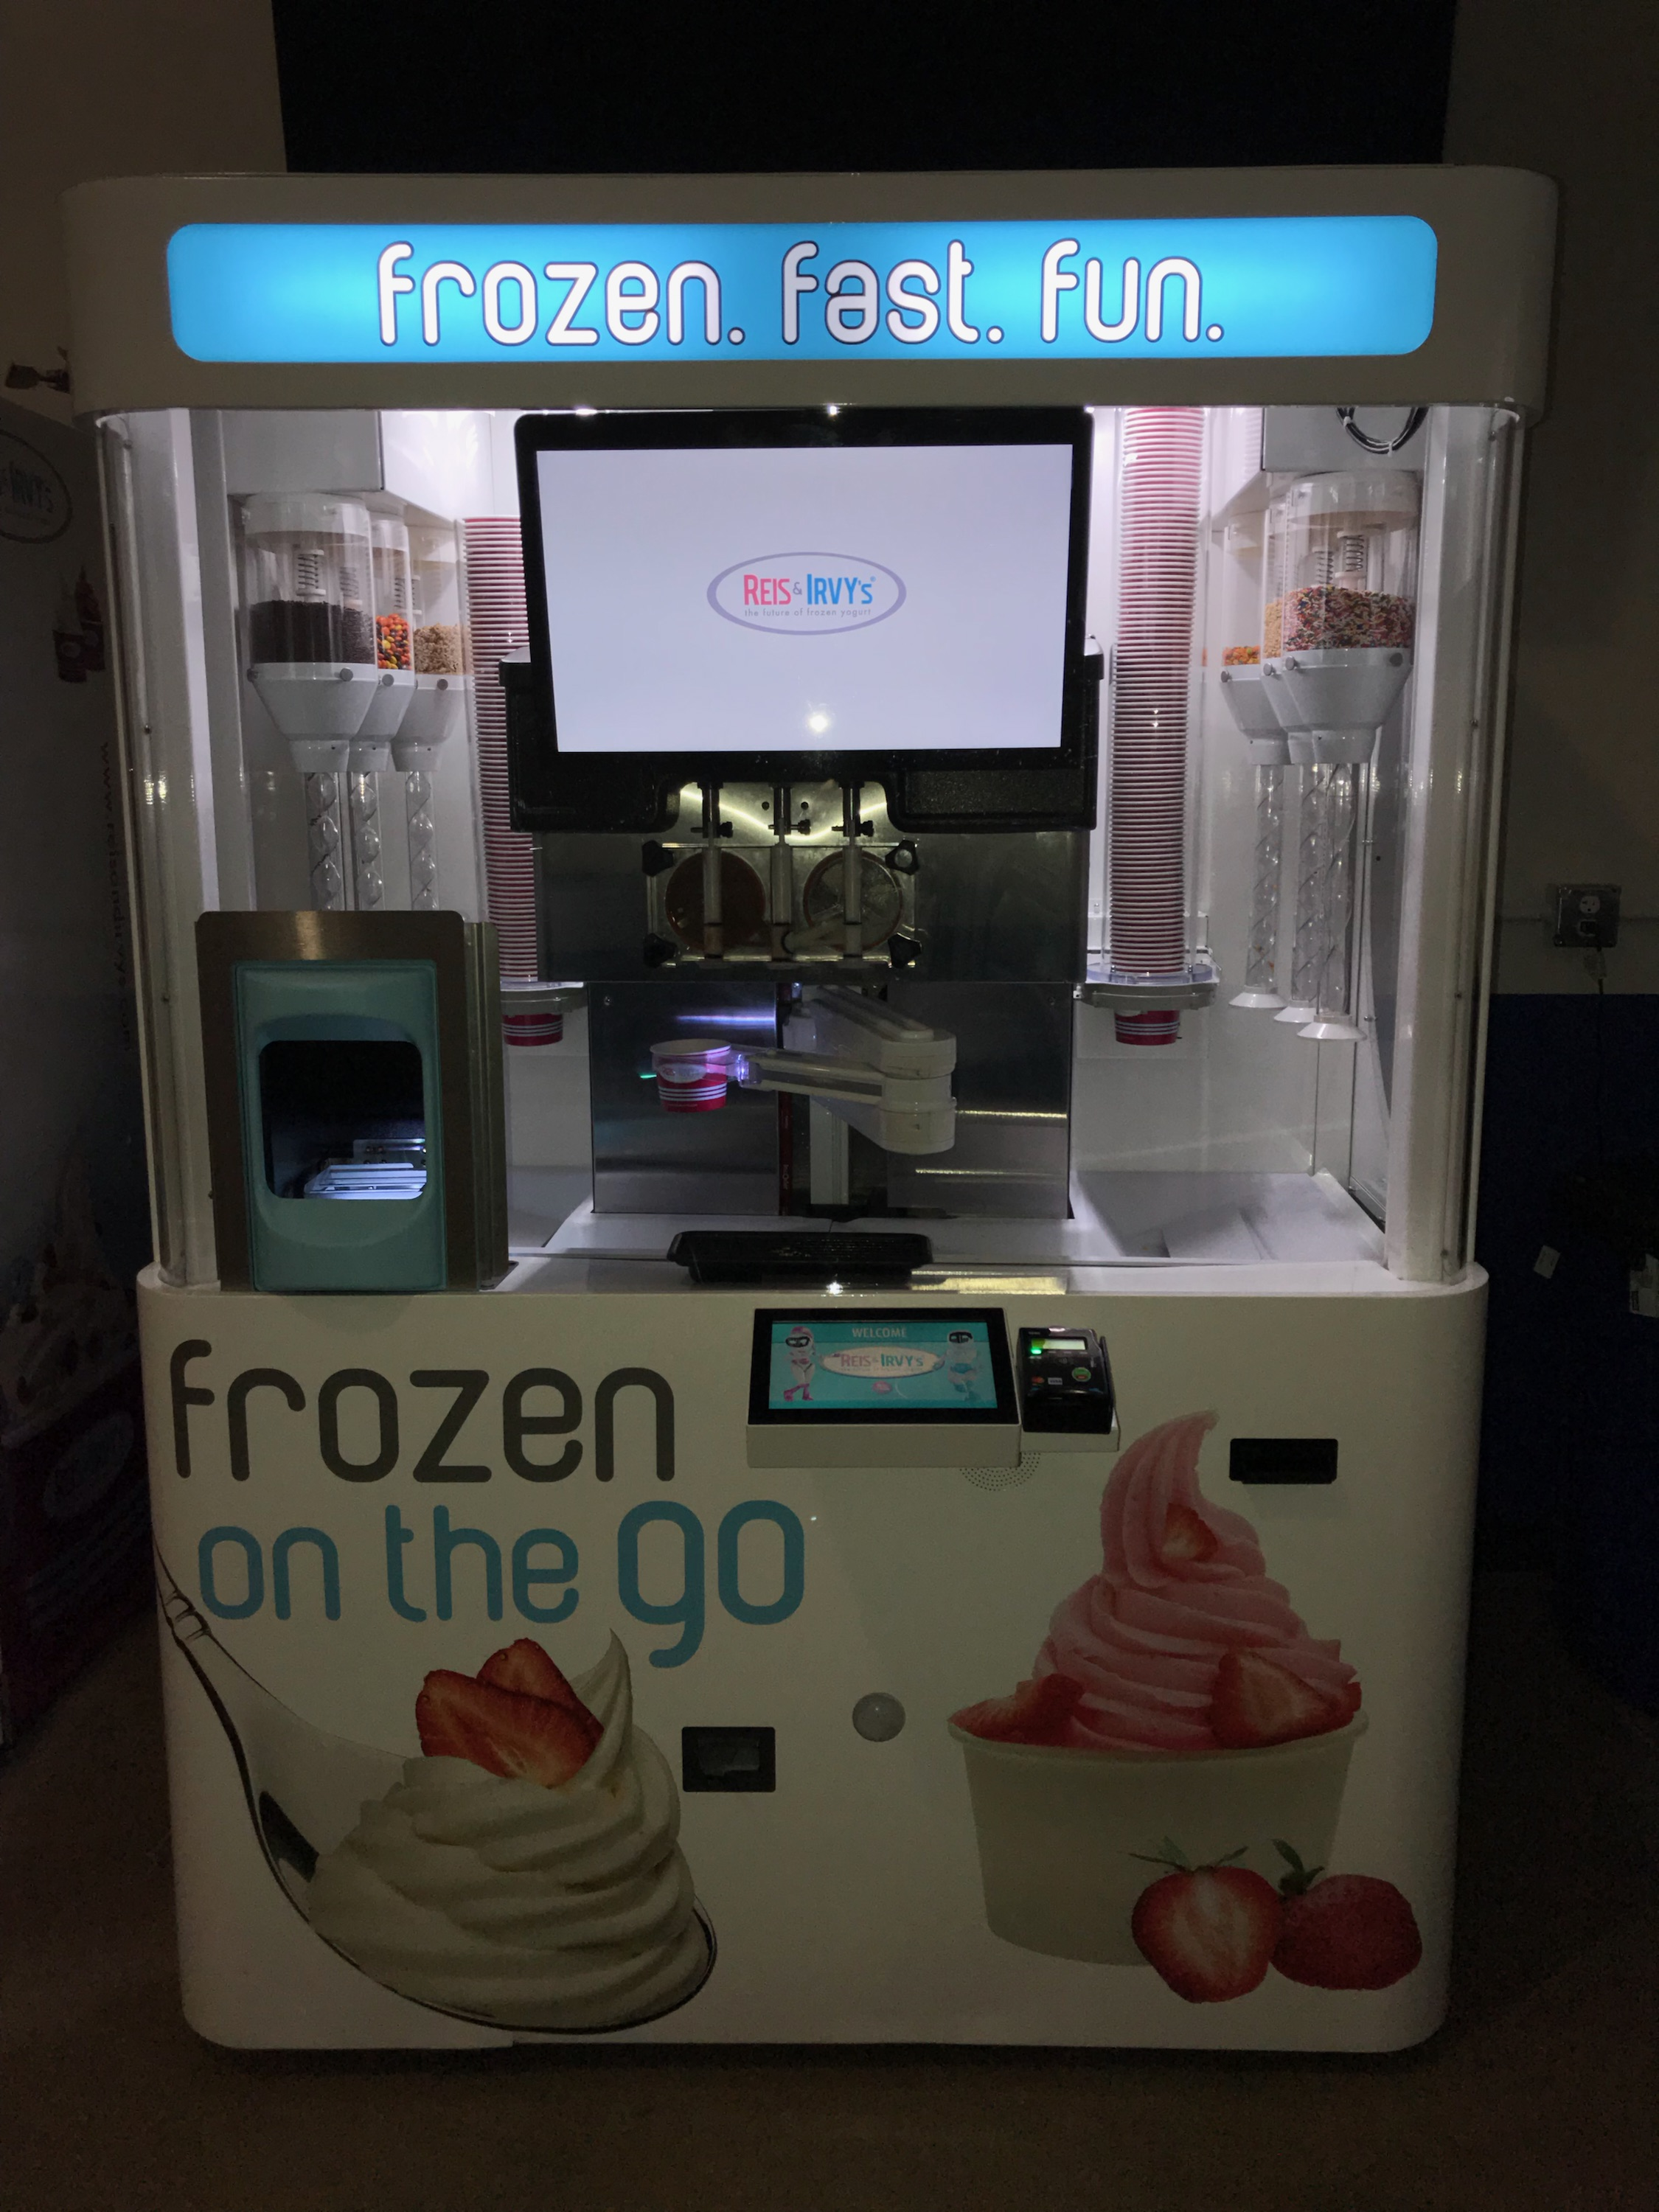 Frozen Yogurt Master Franchise - High Margins & Fastest Growing Froyo Concept!